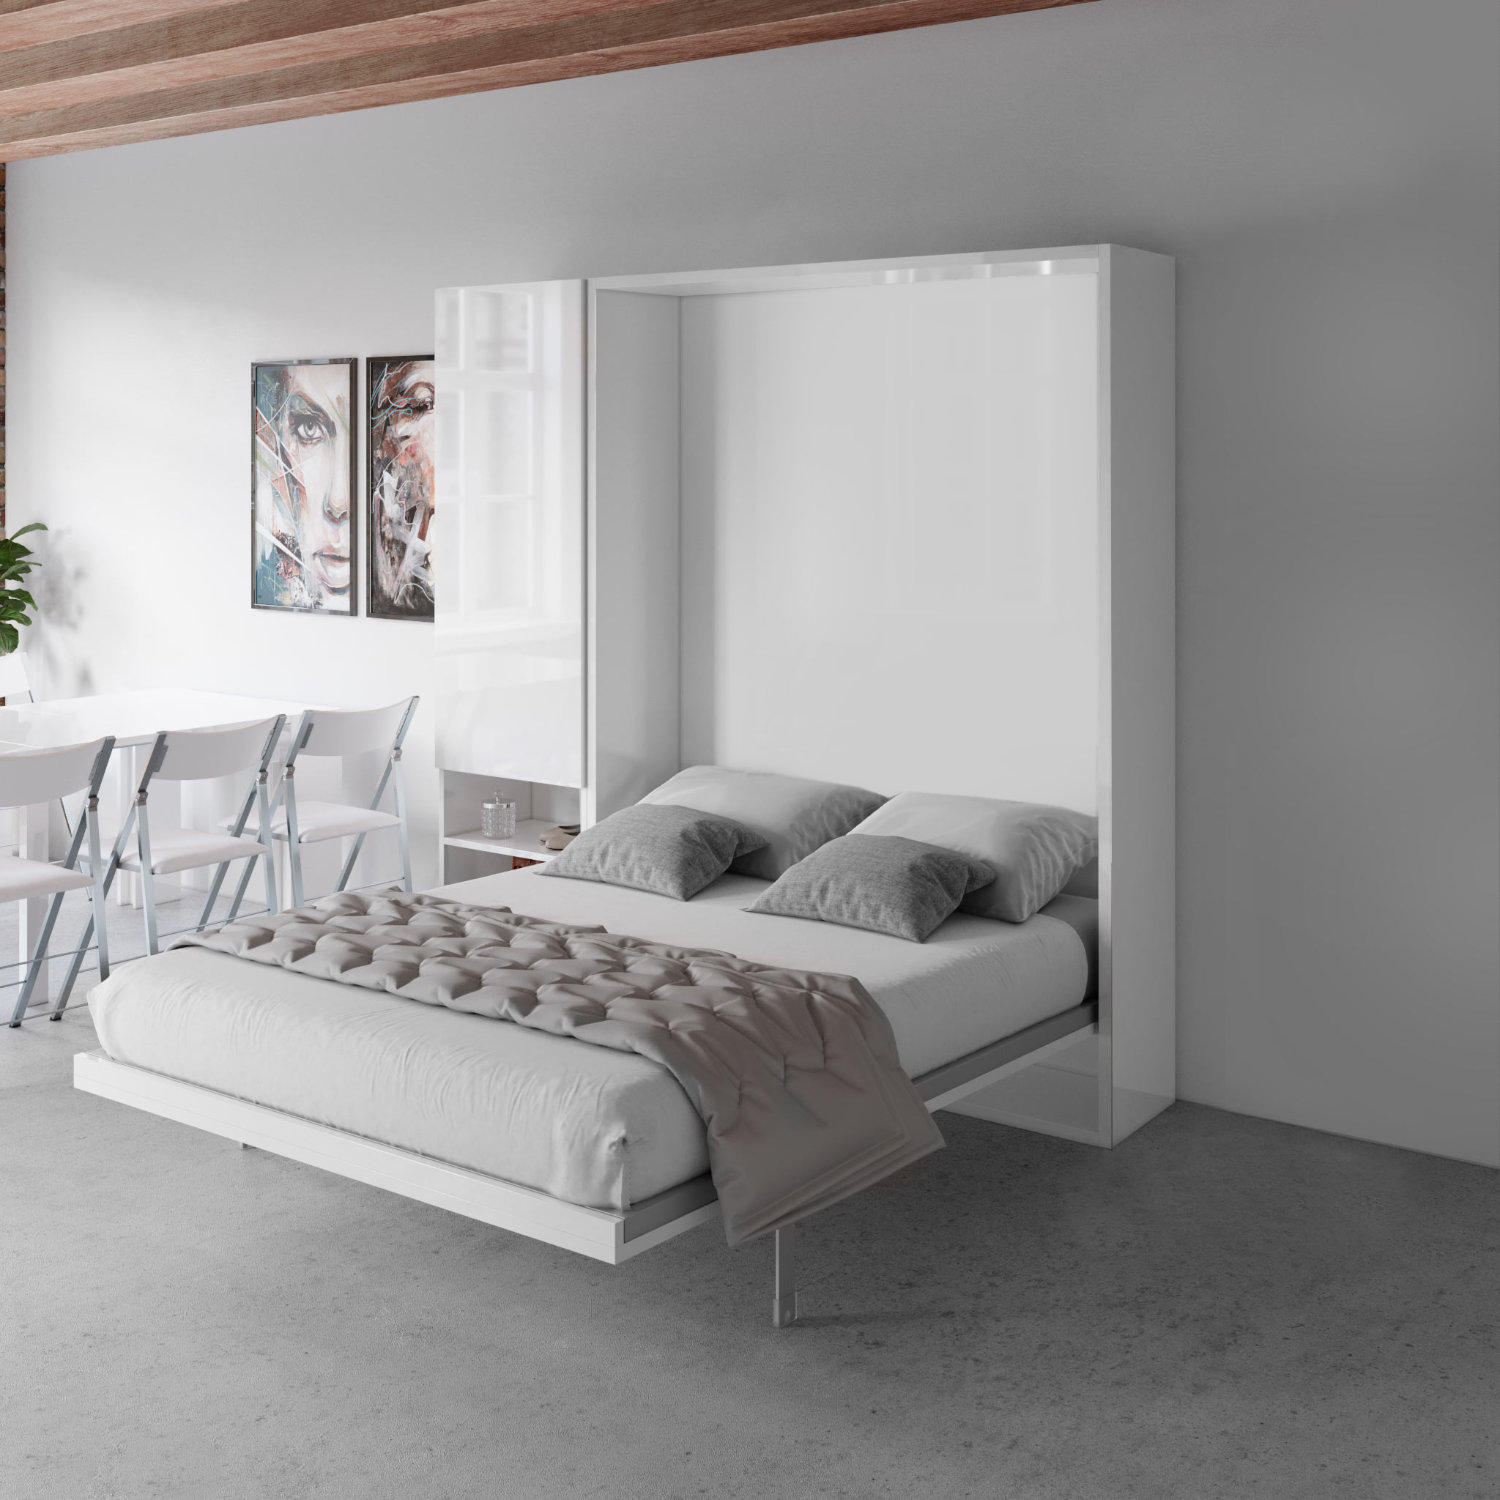 hover compact wall bed queen size expand furniture folding tables smarter wall beds space savers